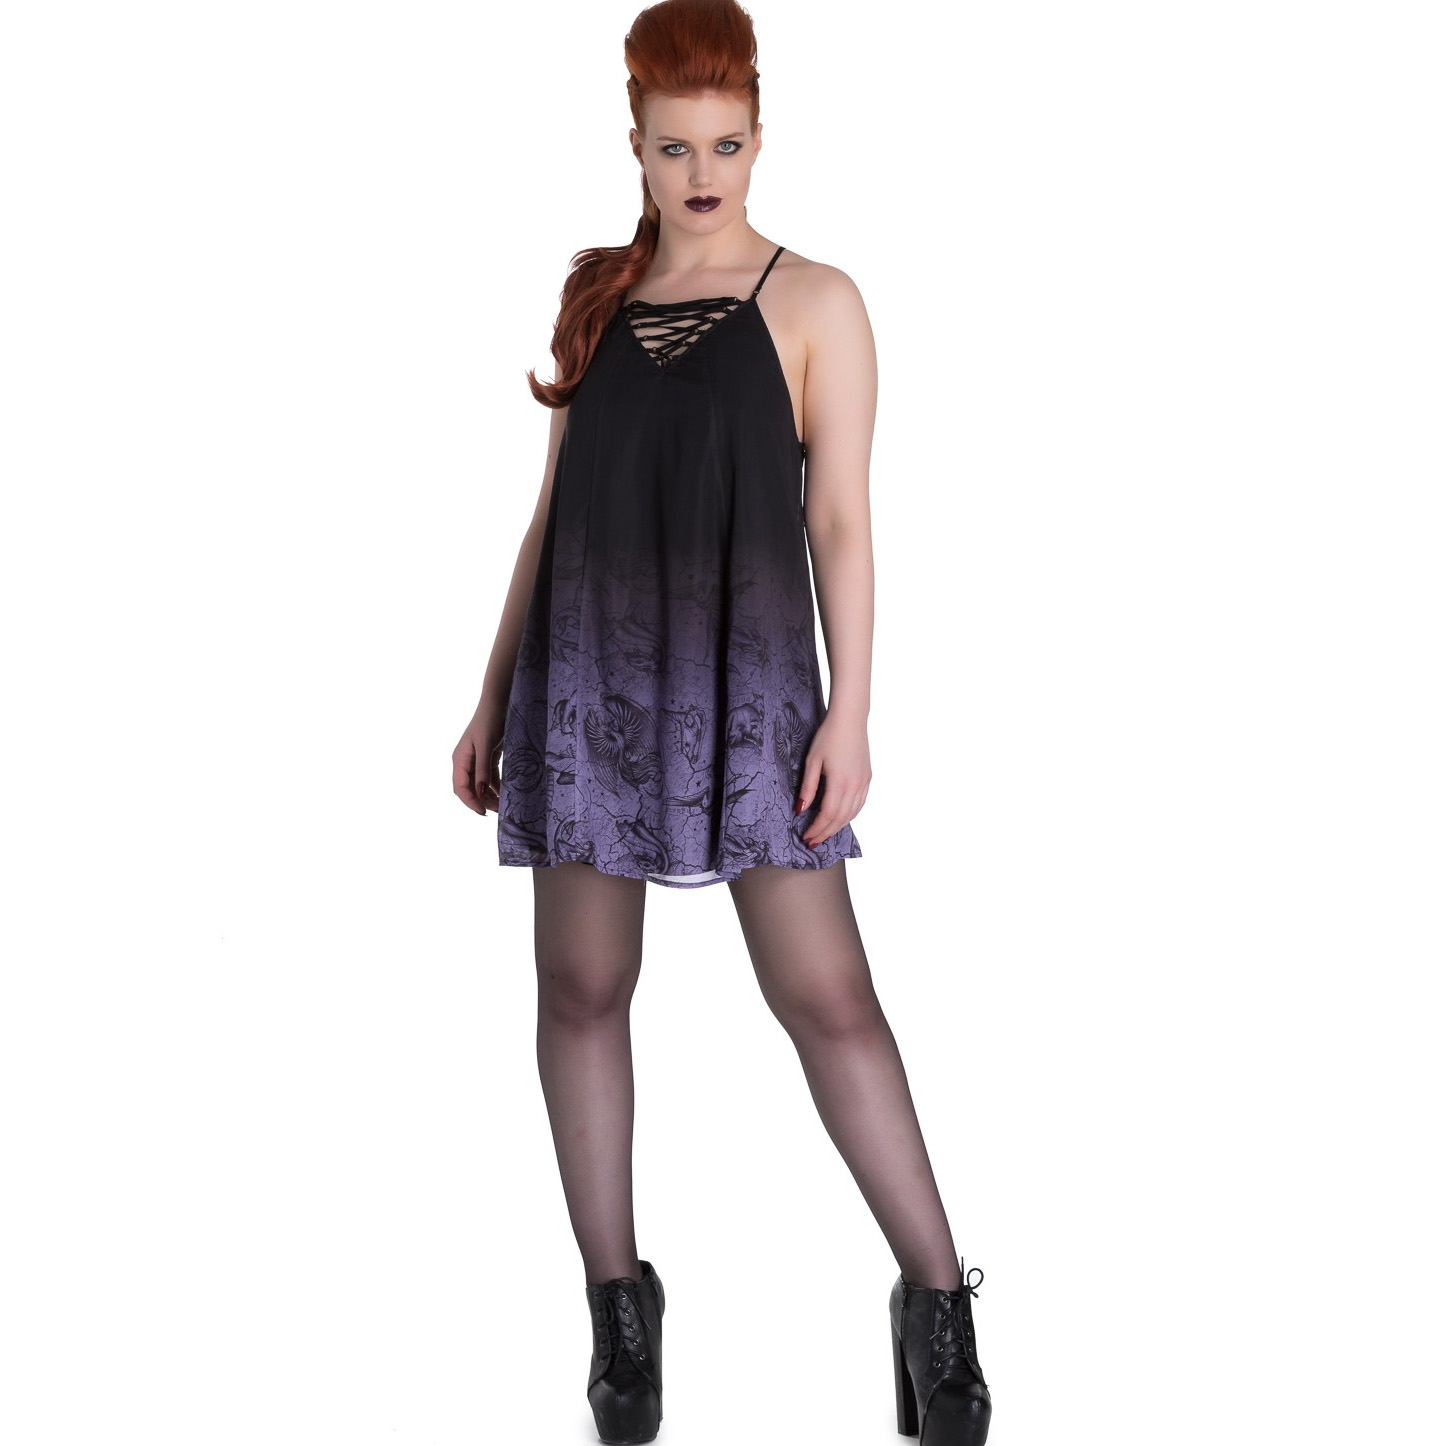 Hell-Bunny-Spin-Doctor-Goth-Lace-Up-Mini-Dress-EVADINE-Purple-Black-All-Sizes thumbnail 15